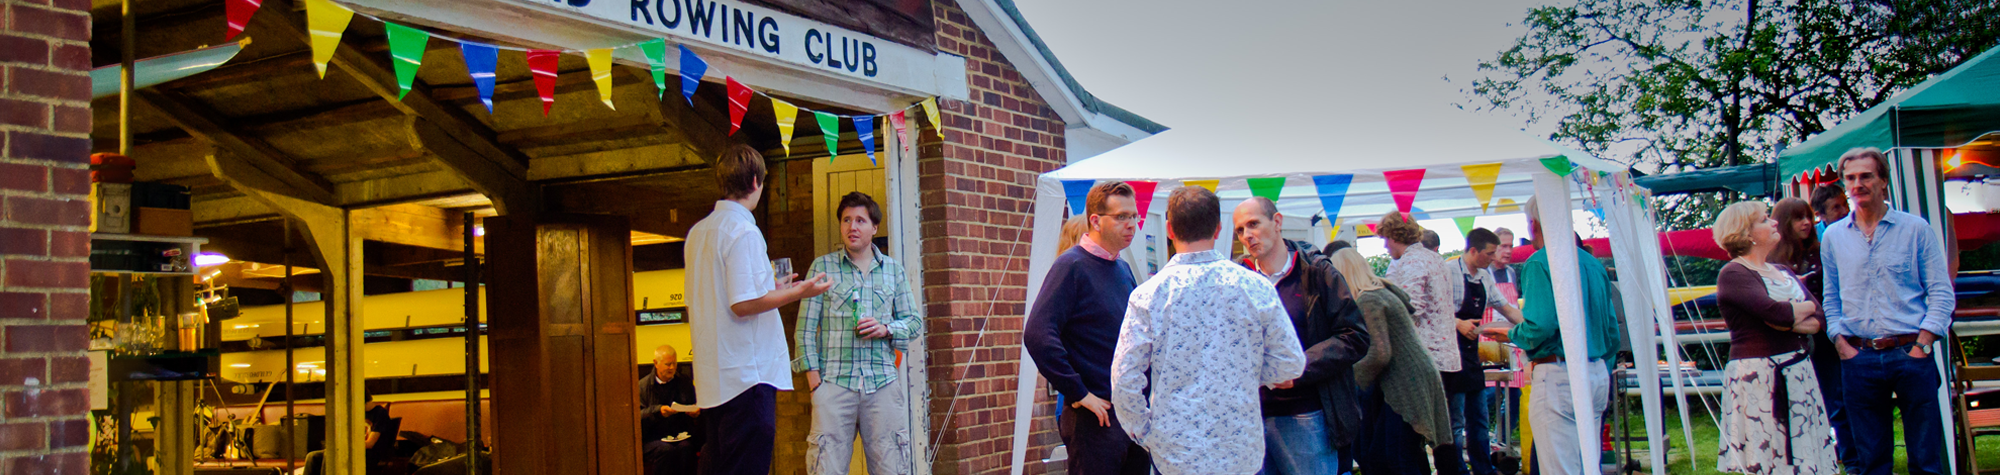 GRC summer party